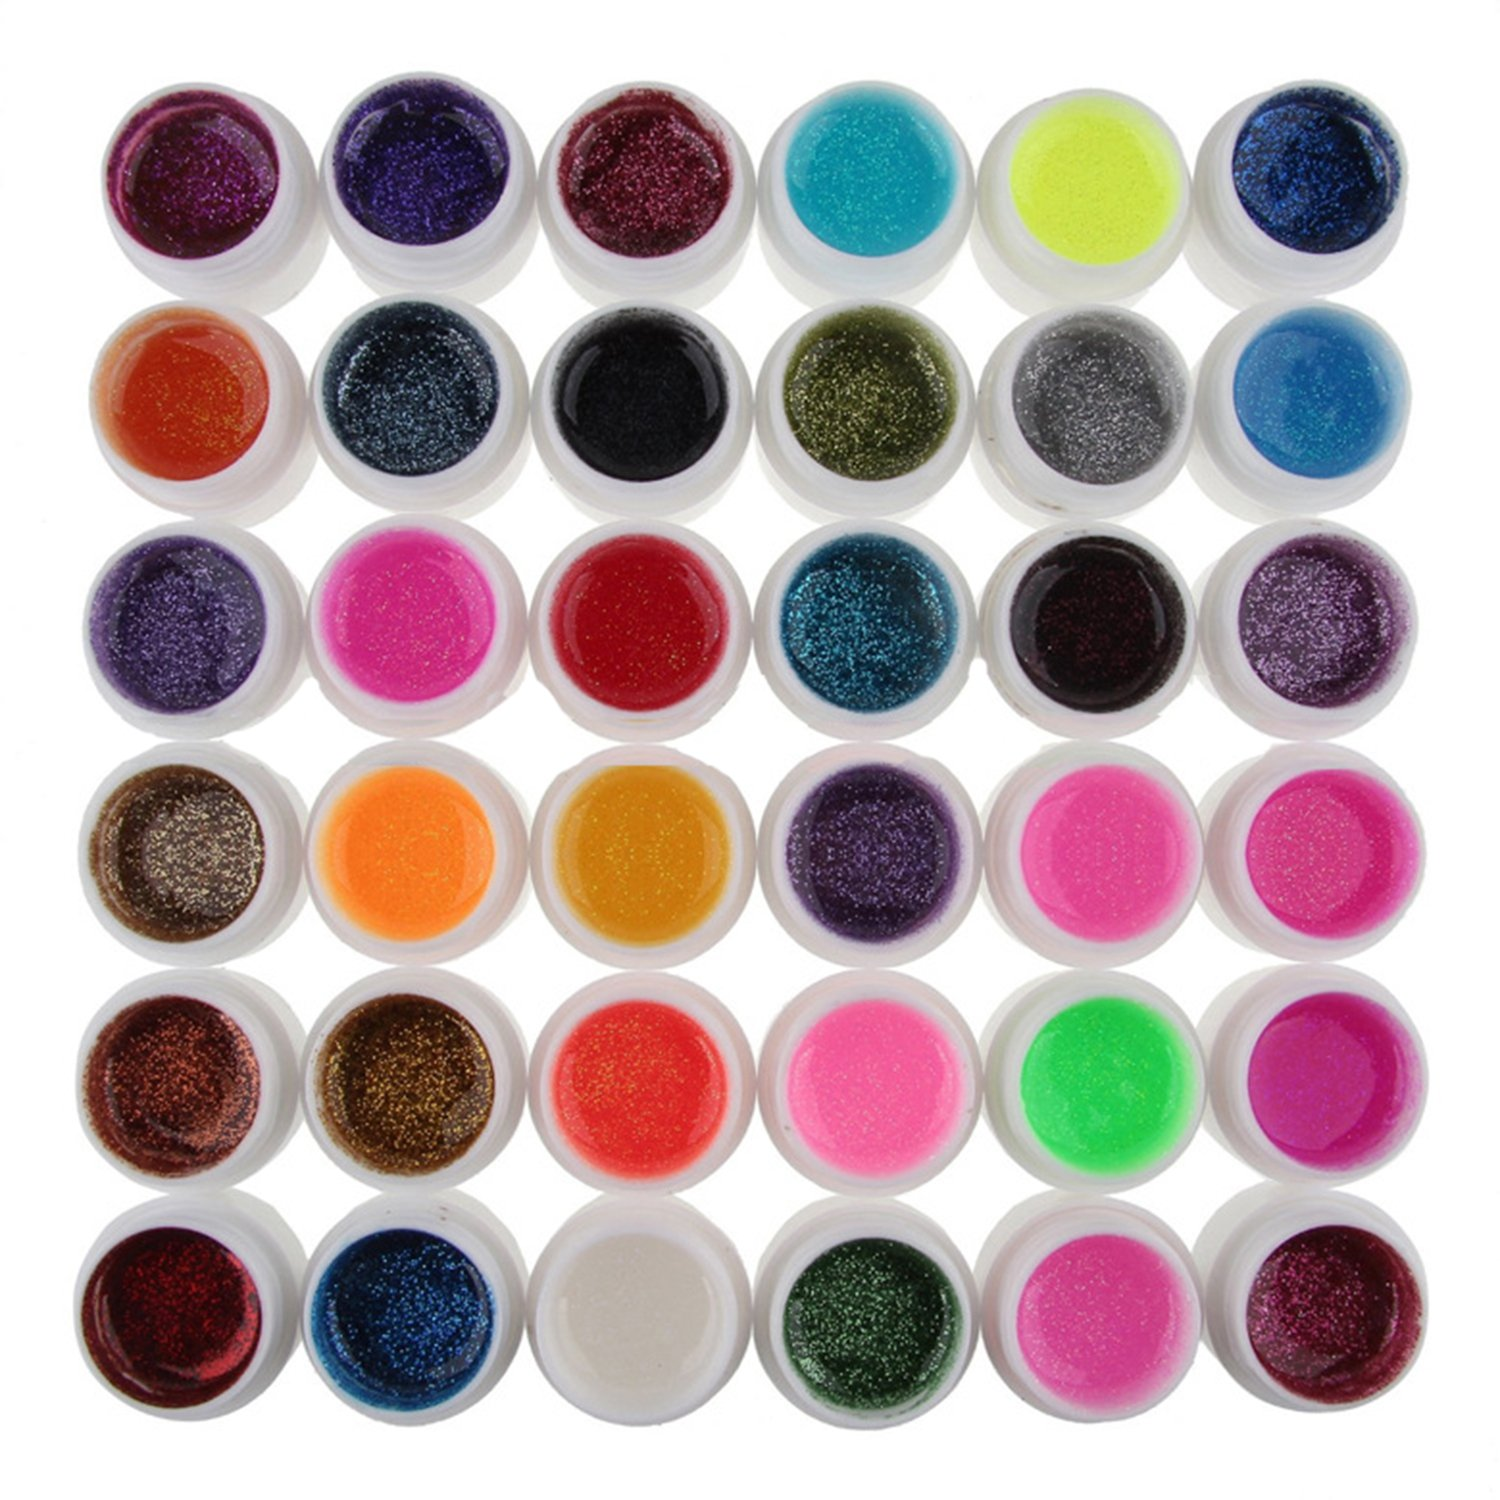 36 Colors UV Gel glitter Mix Color for Acrylic Nail Art Decoration DIY Set Accessories Elisona